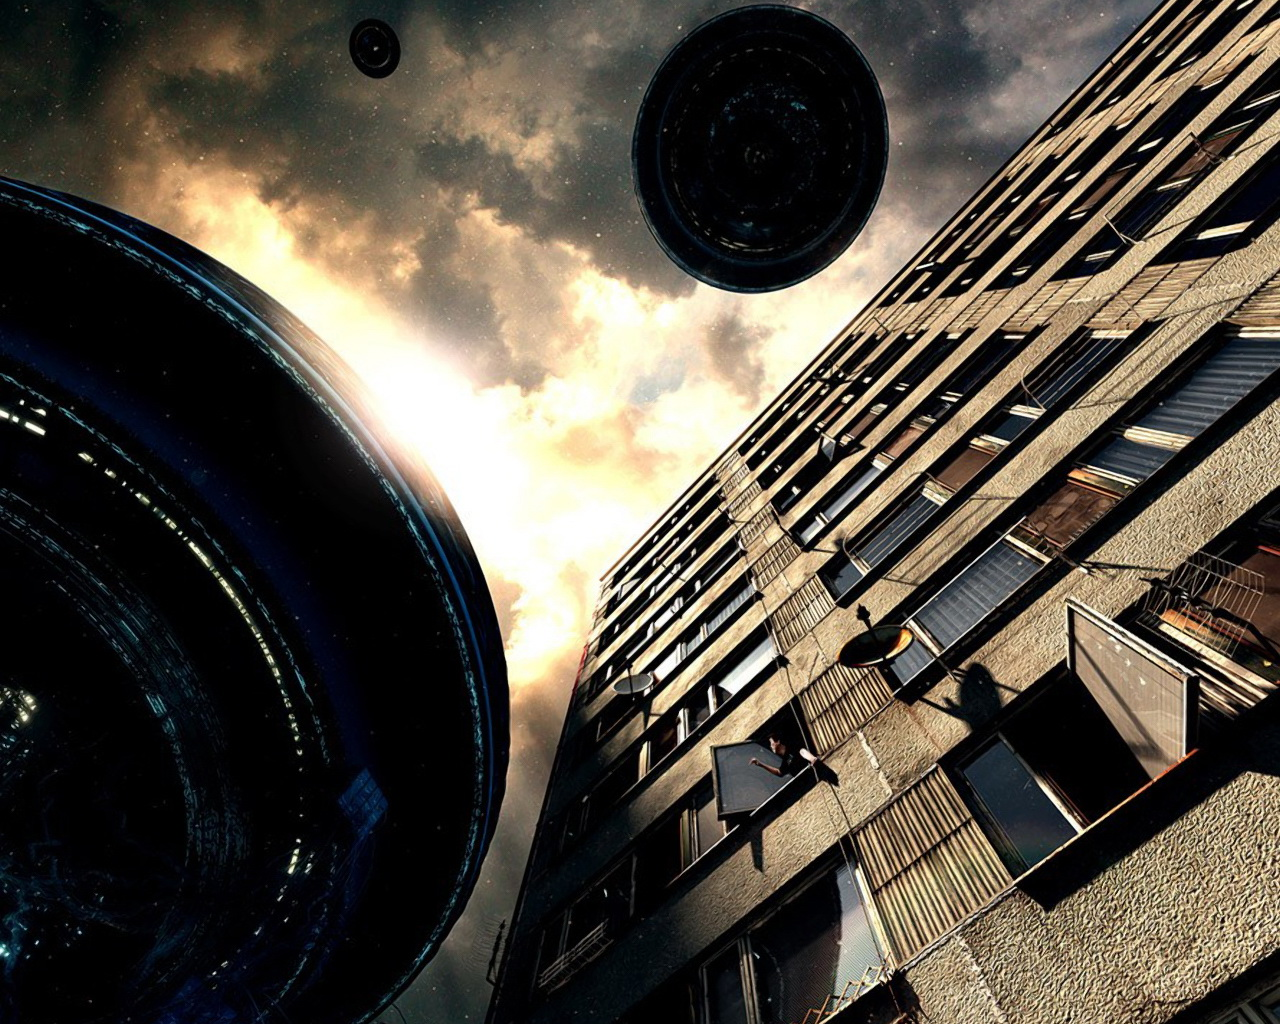 Ufo Hd Wallpaper Posted By Ethan Thompson